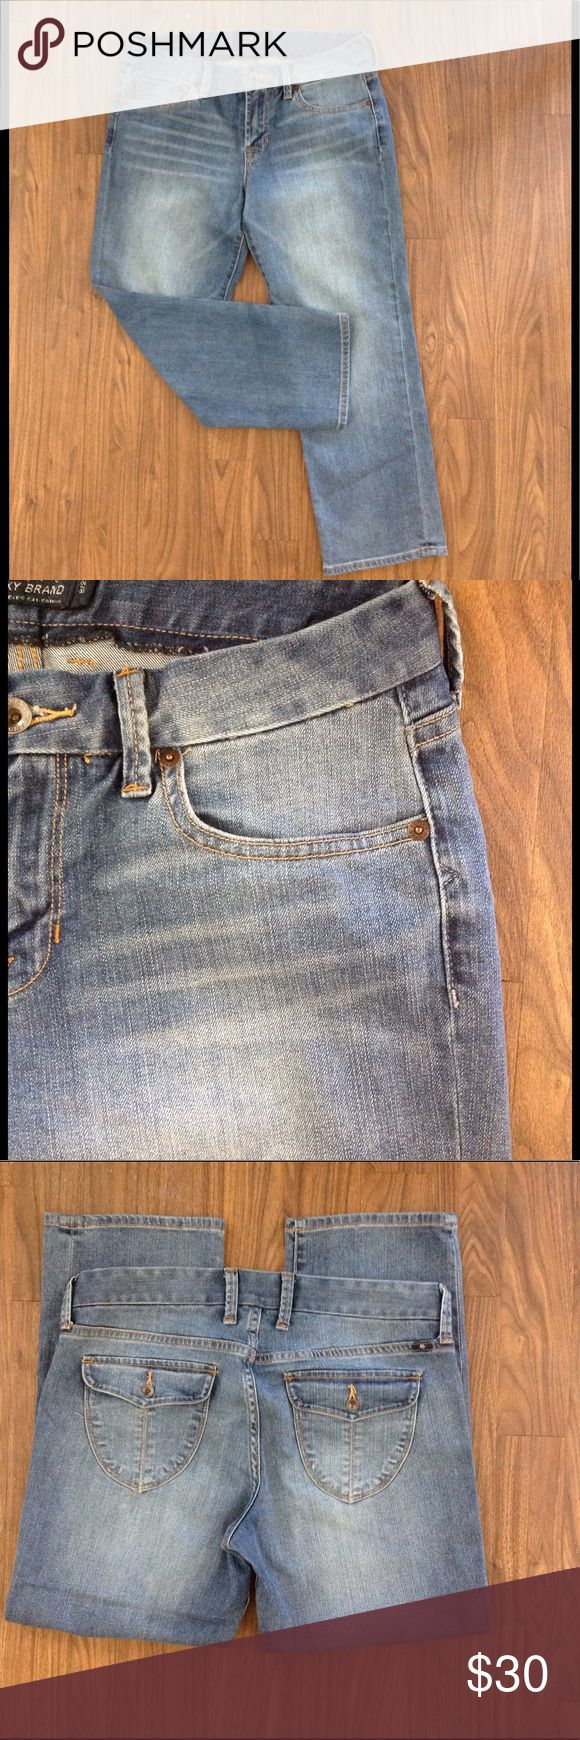 LUCKY BRAND sweet jeans crop denim pockets sz 8/29 LUCKY brand jeans crop. Size 8/29. Style sweet jean crop flap. Back pockets with buttons. Good preowned condition. Please look at all pictures before you purchase. And ask any questions. Thanks Lucky Brand Jeans Ankle & Cropped